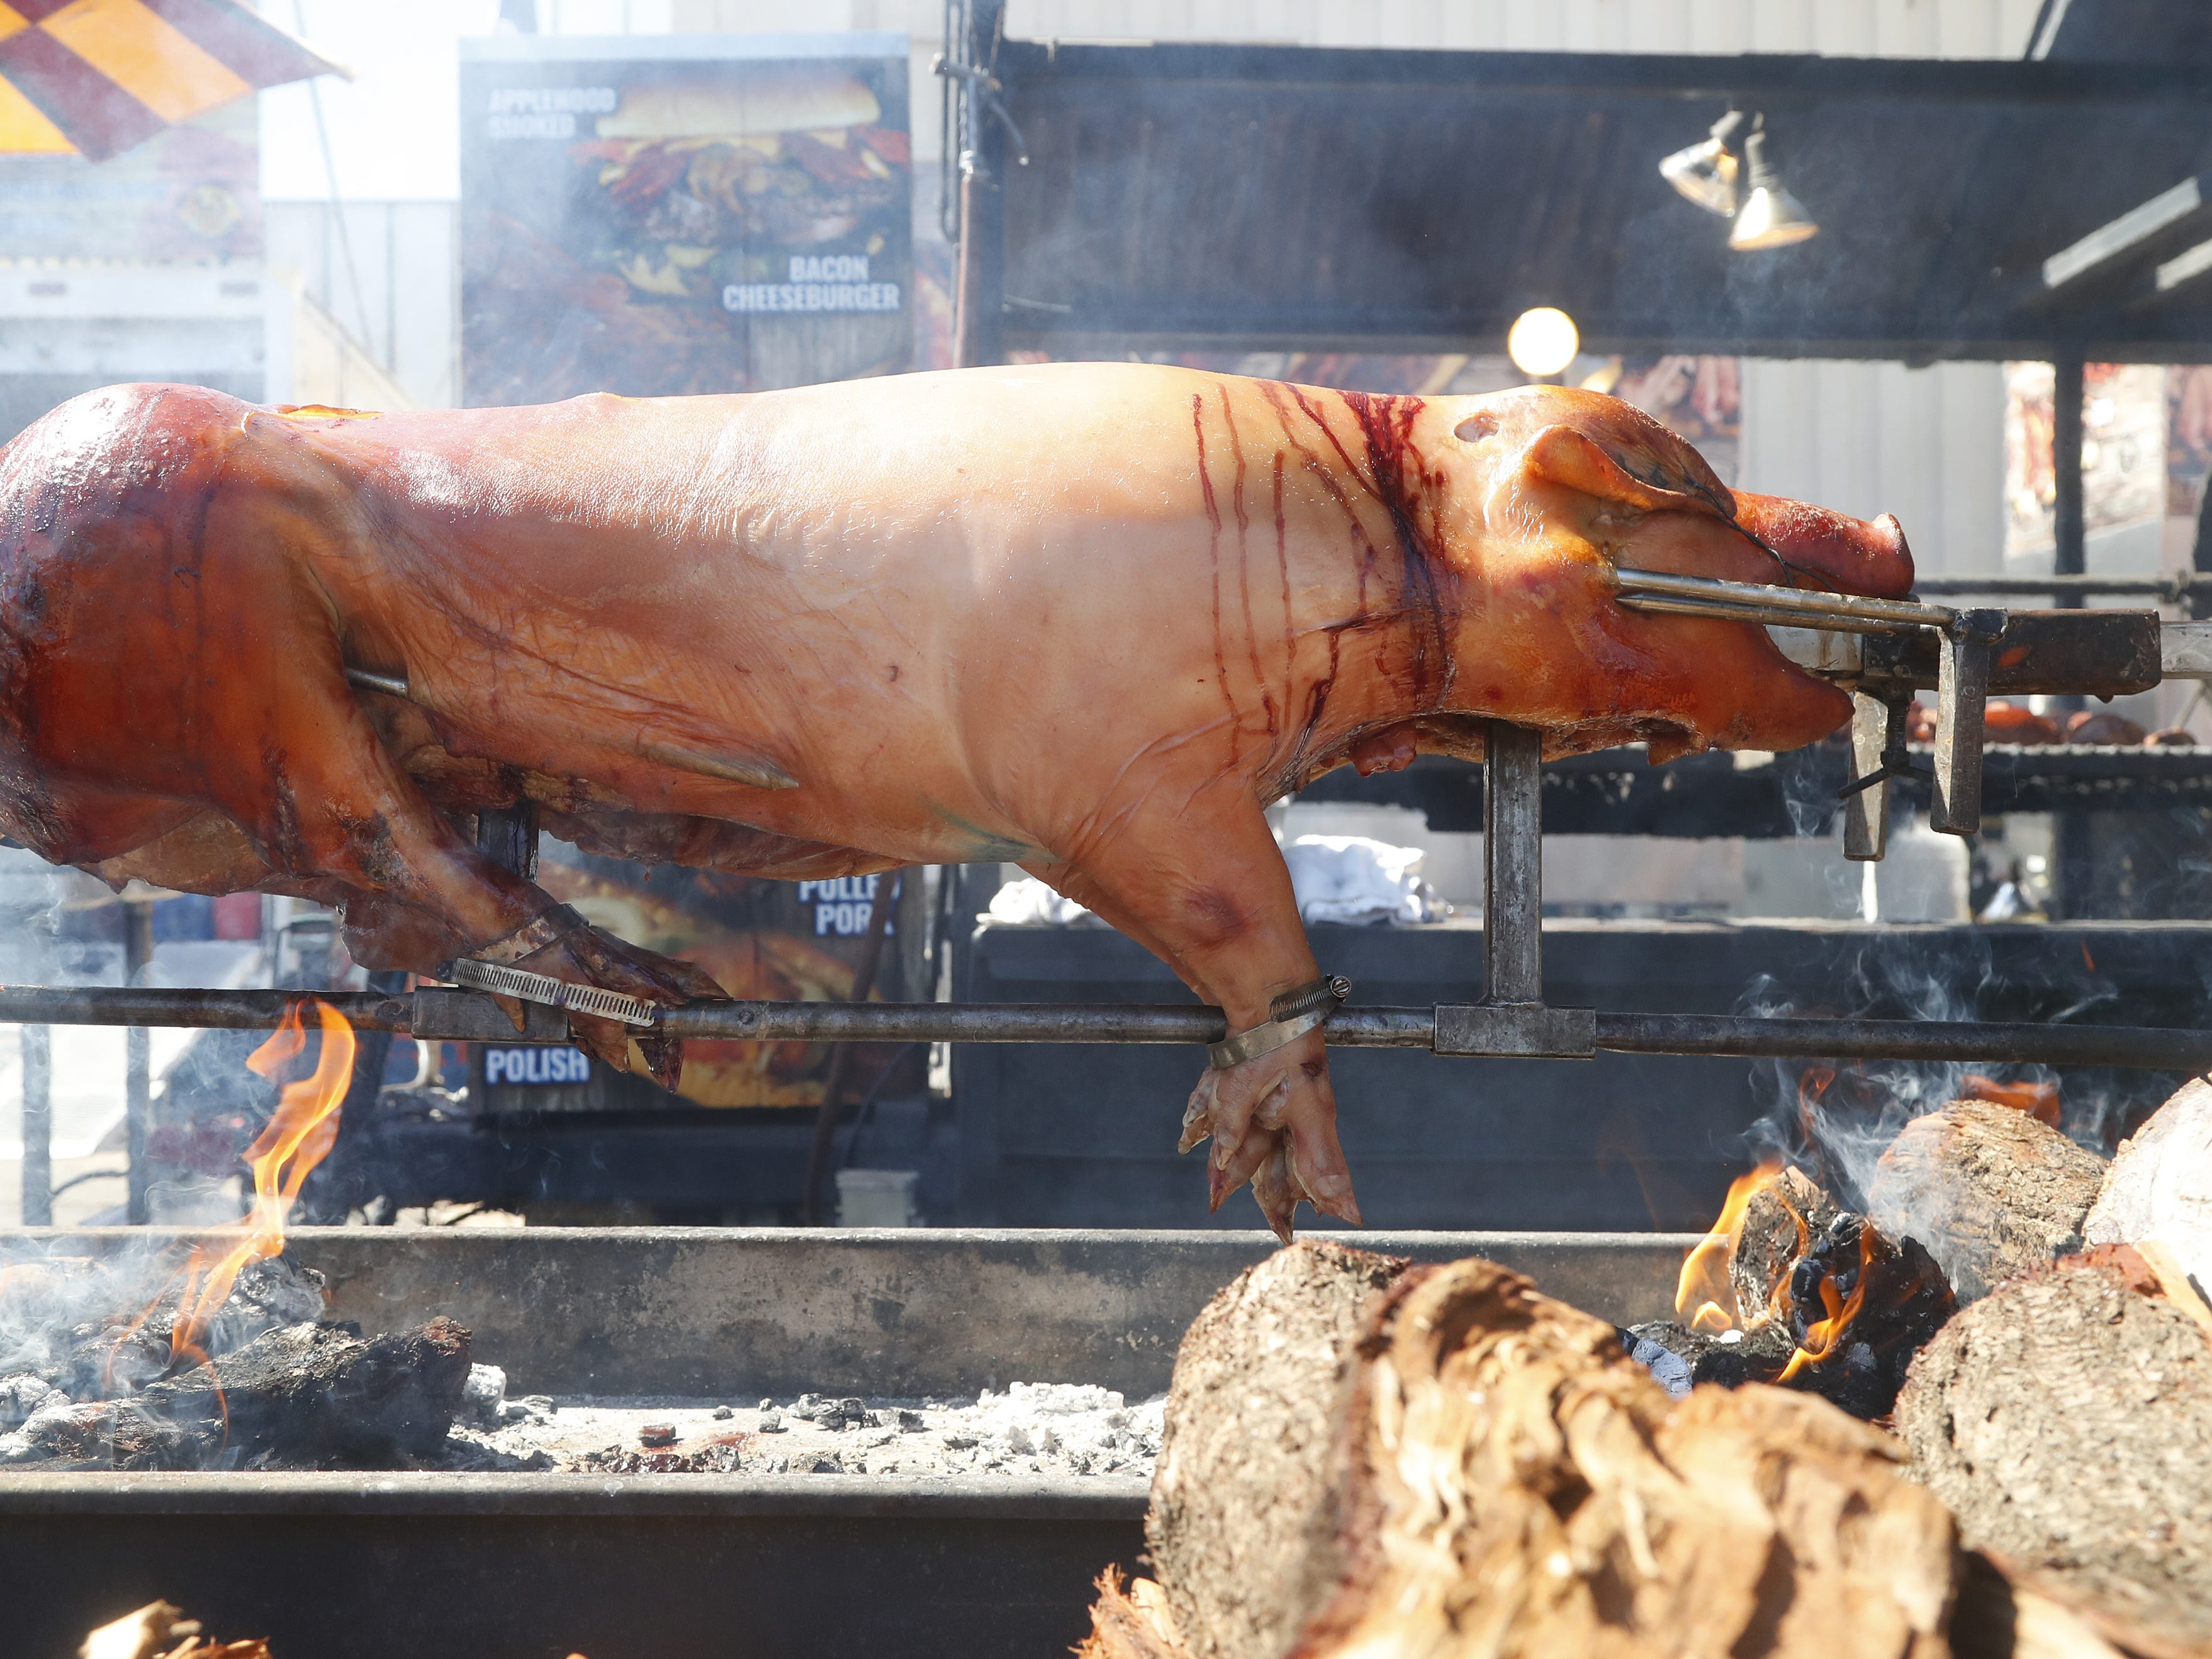 A pig is barbecued at the Arizona State Fair in Tempe, Ariz. on October 5, 2018.